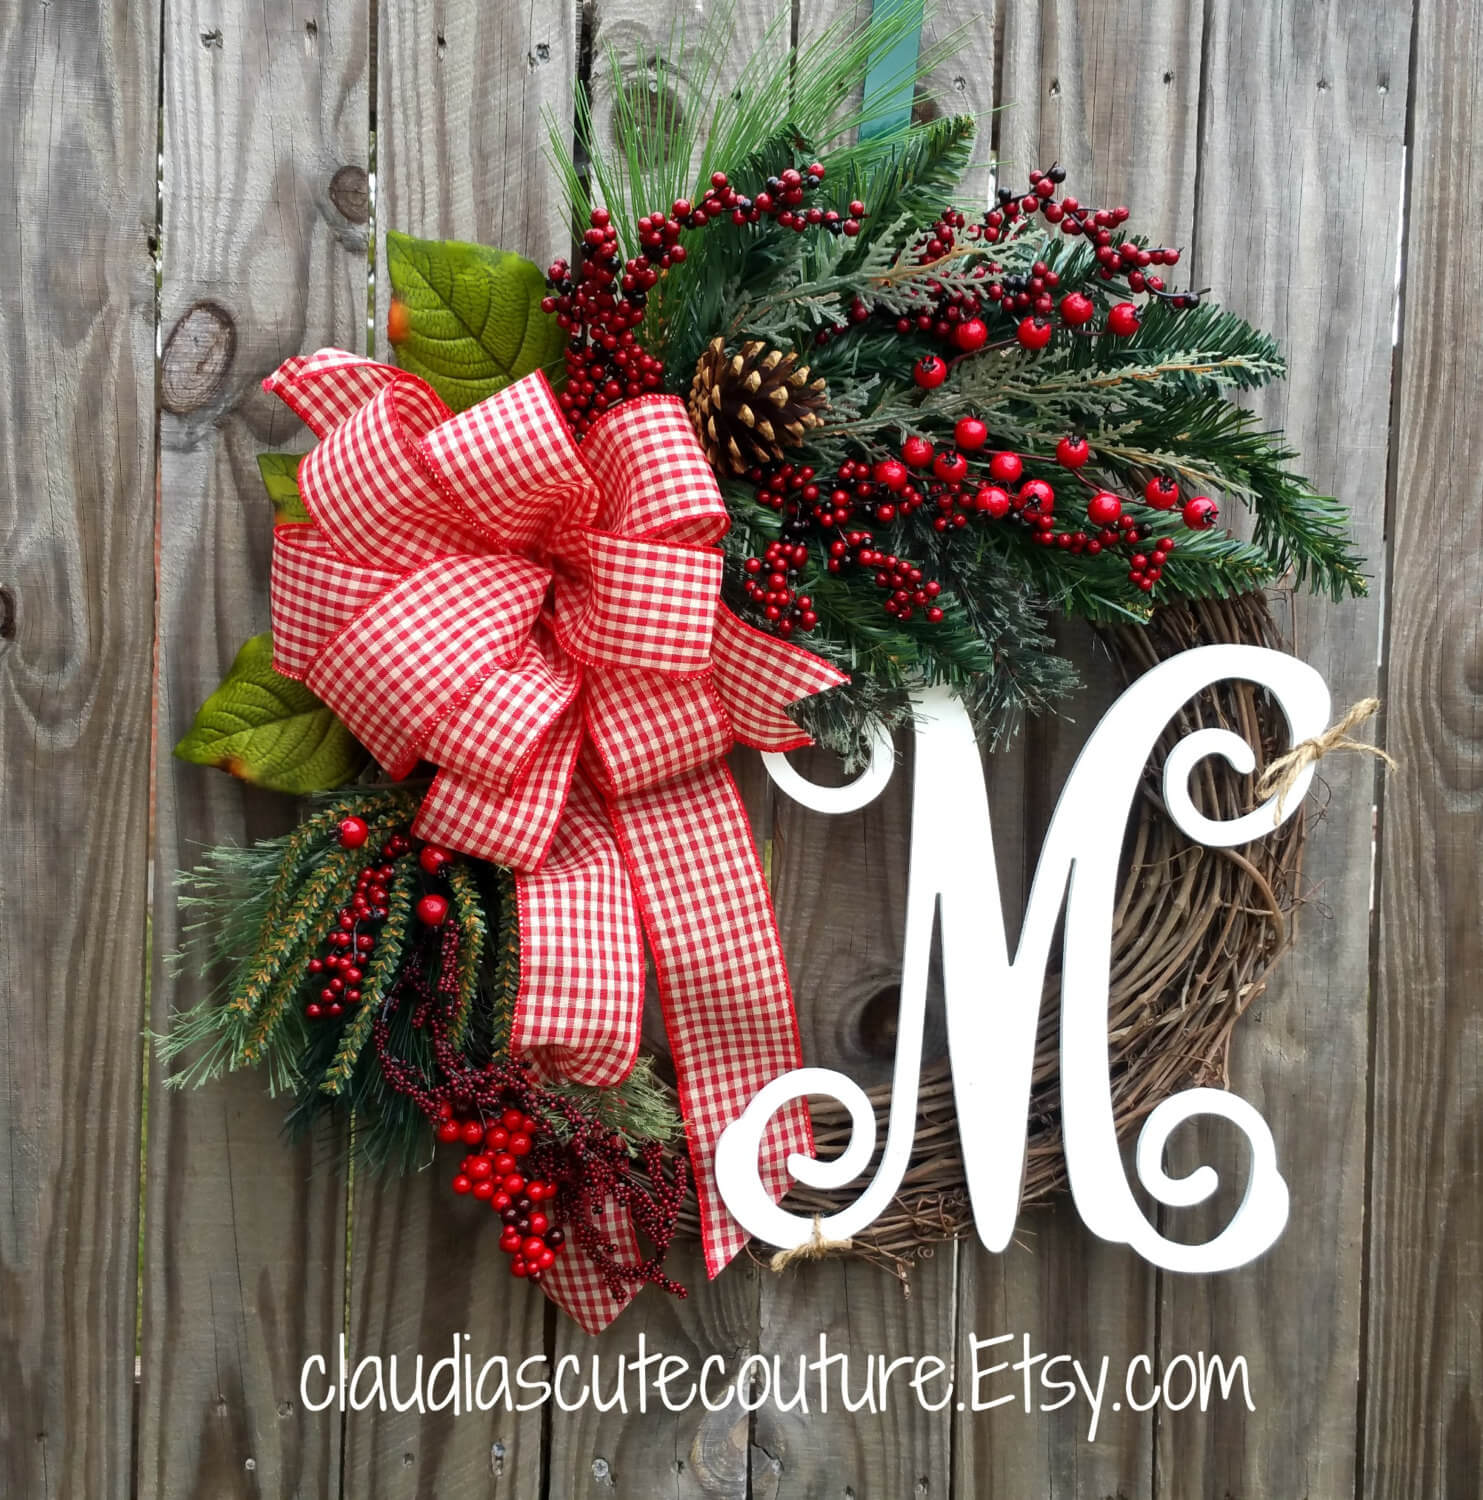 How To Make Christmas Wreath With Ornaments